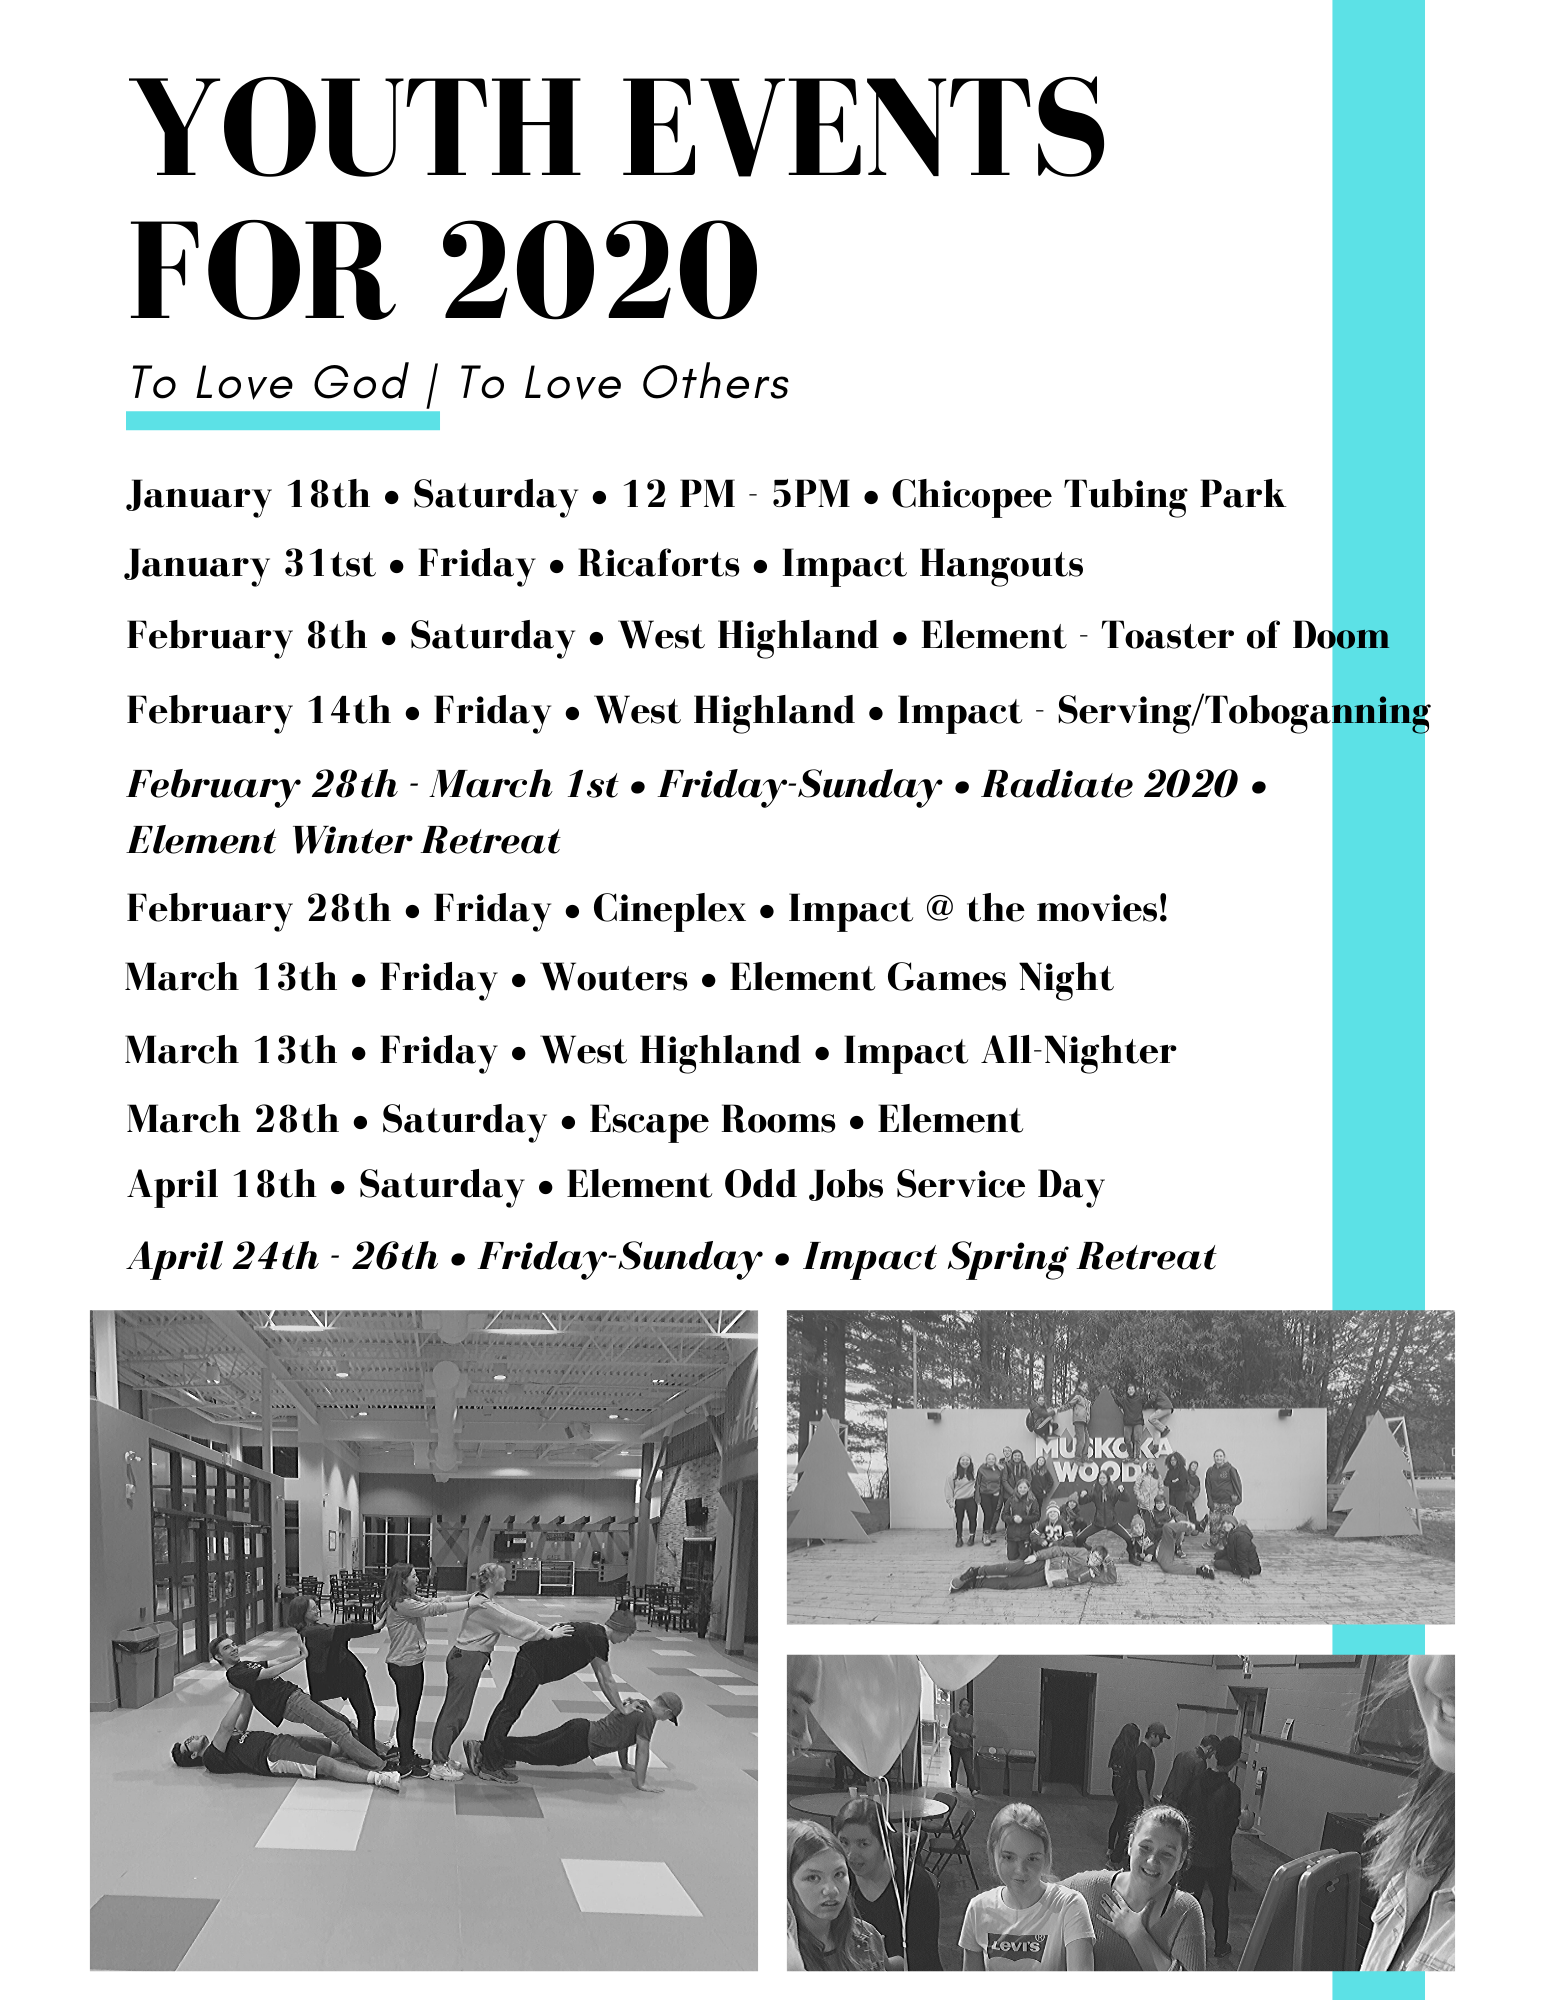 Youth Events for 2020 (v2)